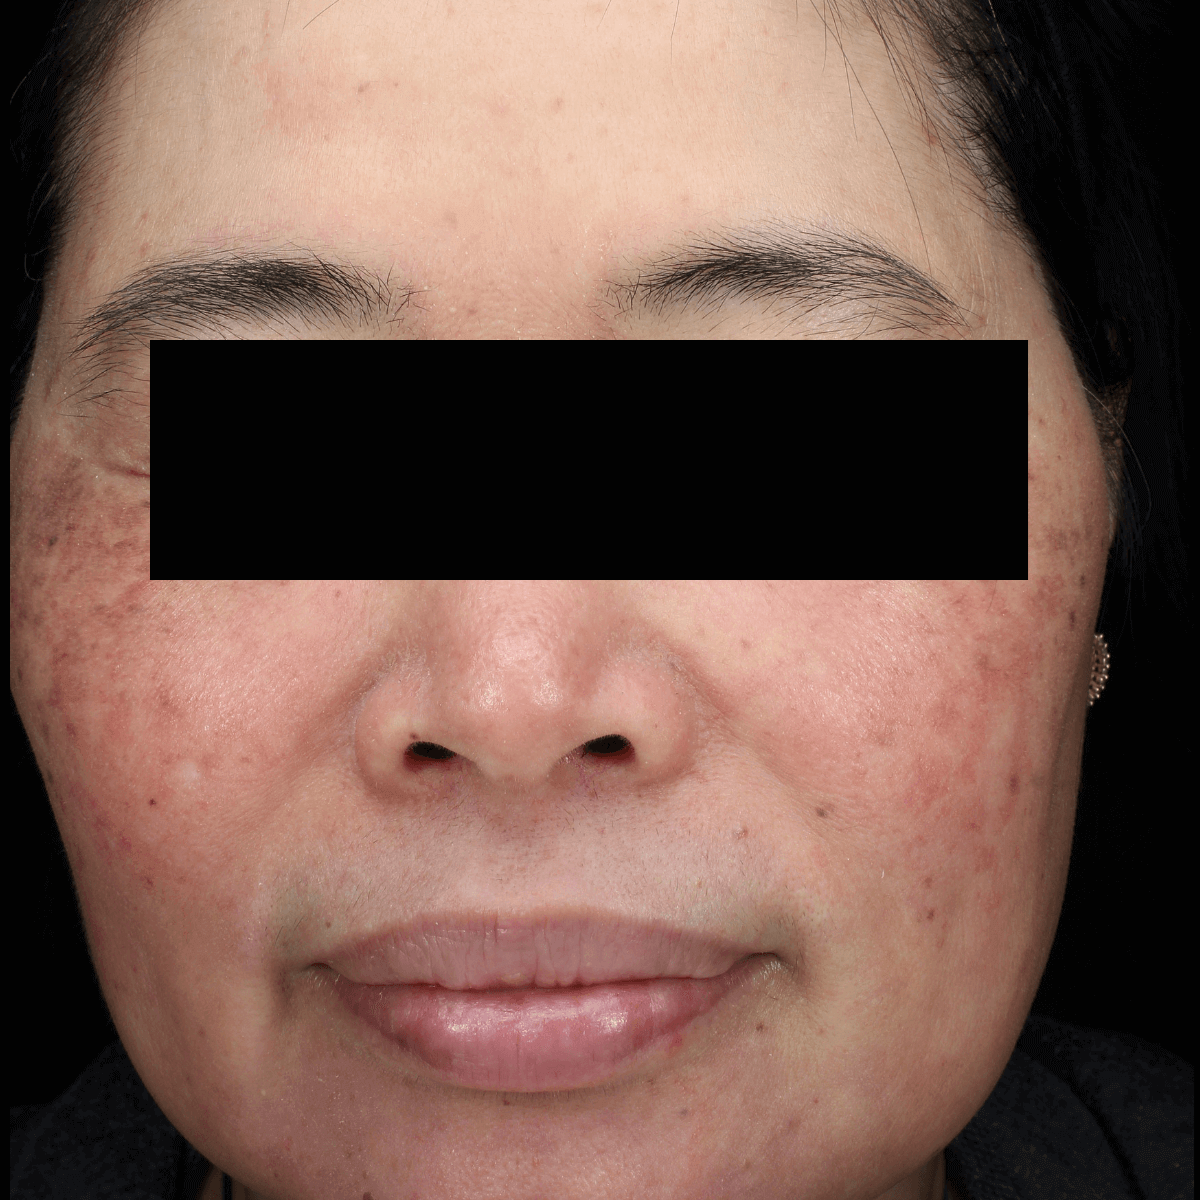 Amazing Rosacea Results! After